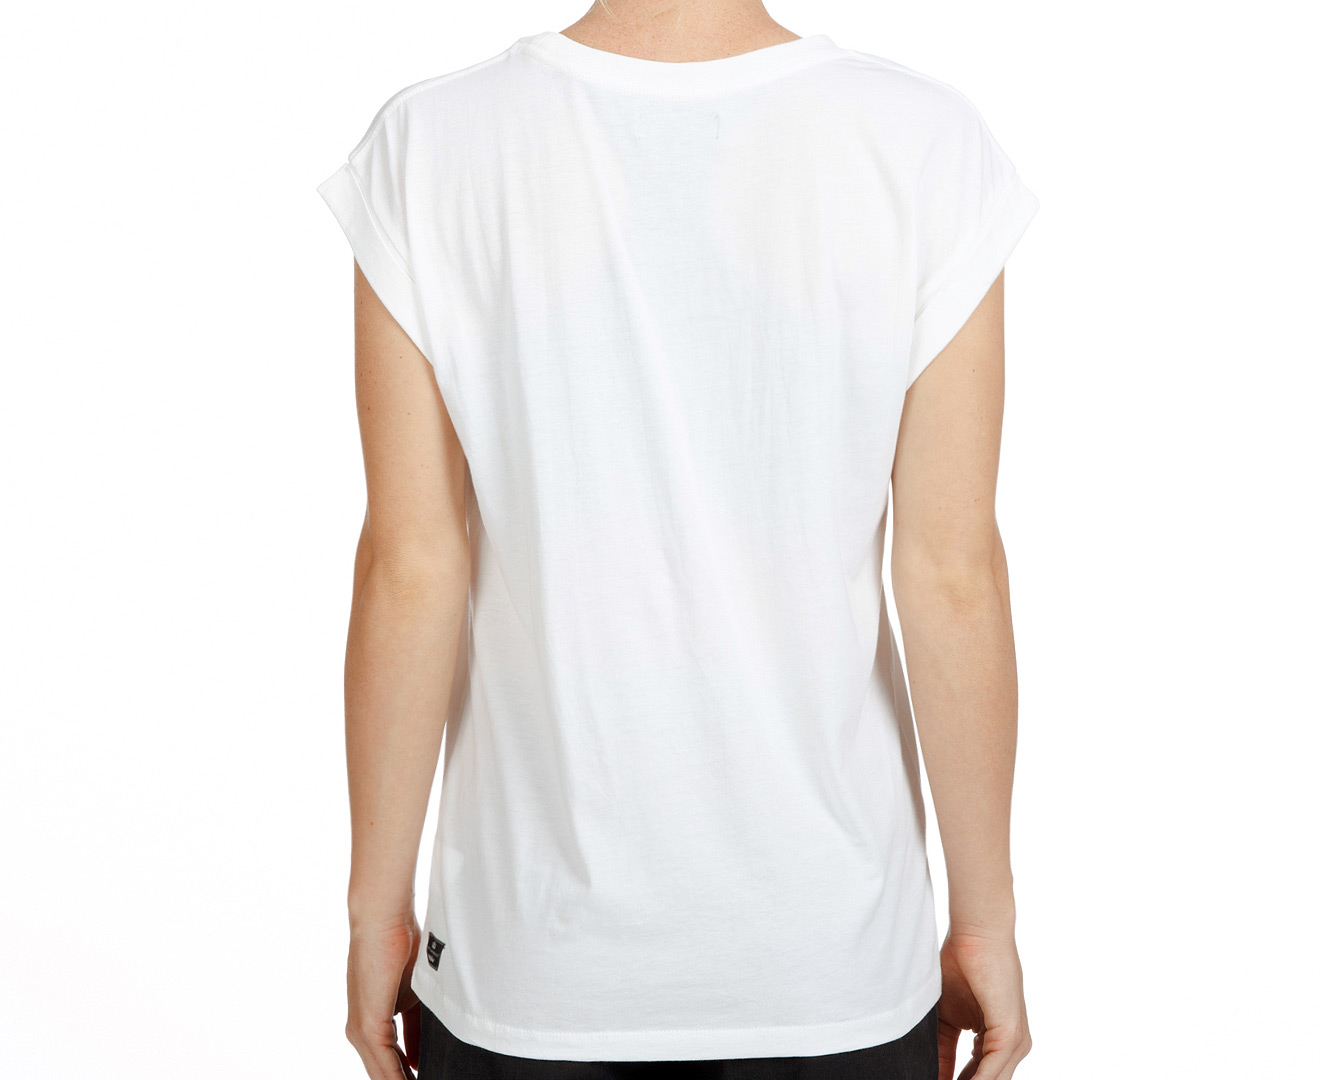 Mossimo T Shirts Online